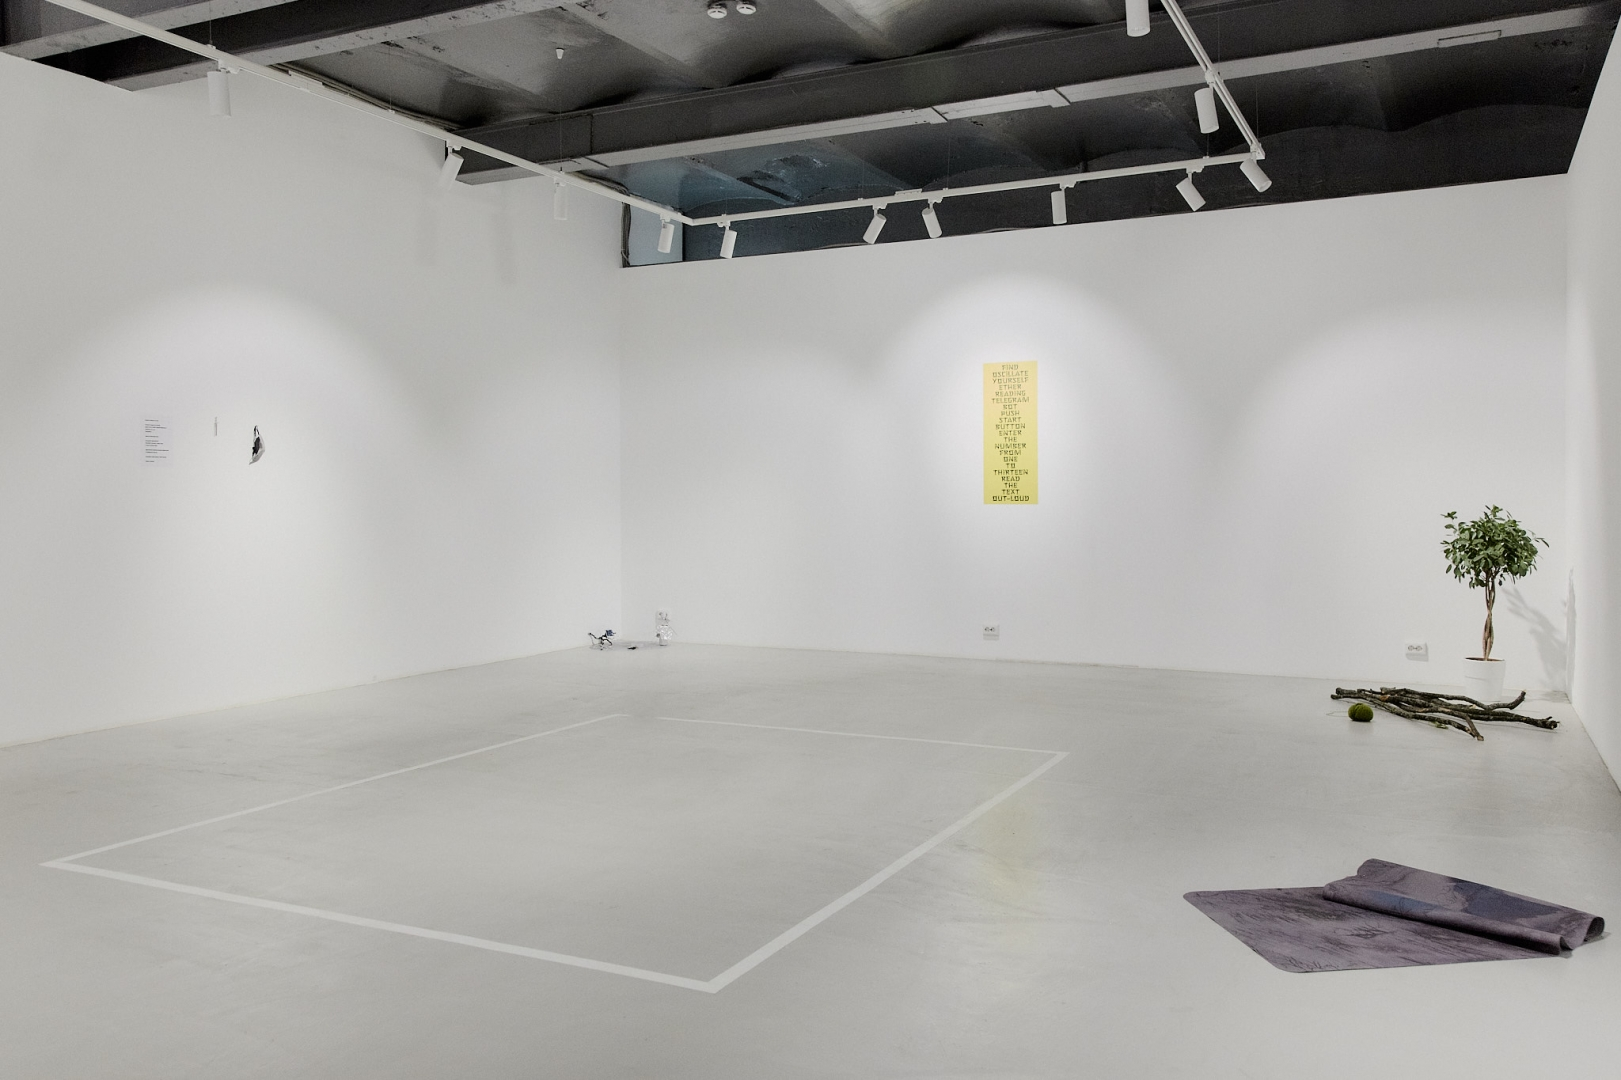 Going Unconscious / Trembling / With Eyes Open / I See You / Surrender exhibition view, HSE ART gallery, 2018